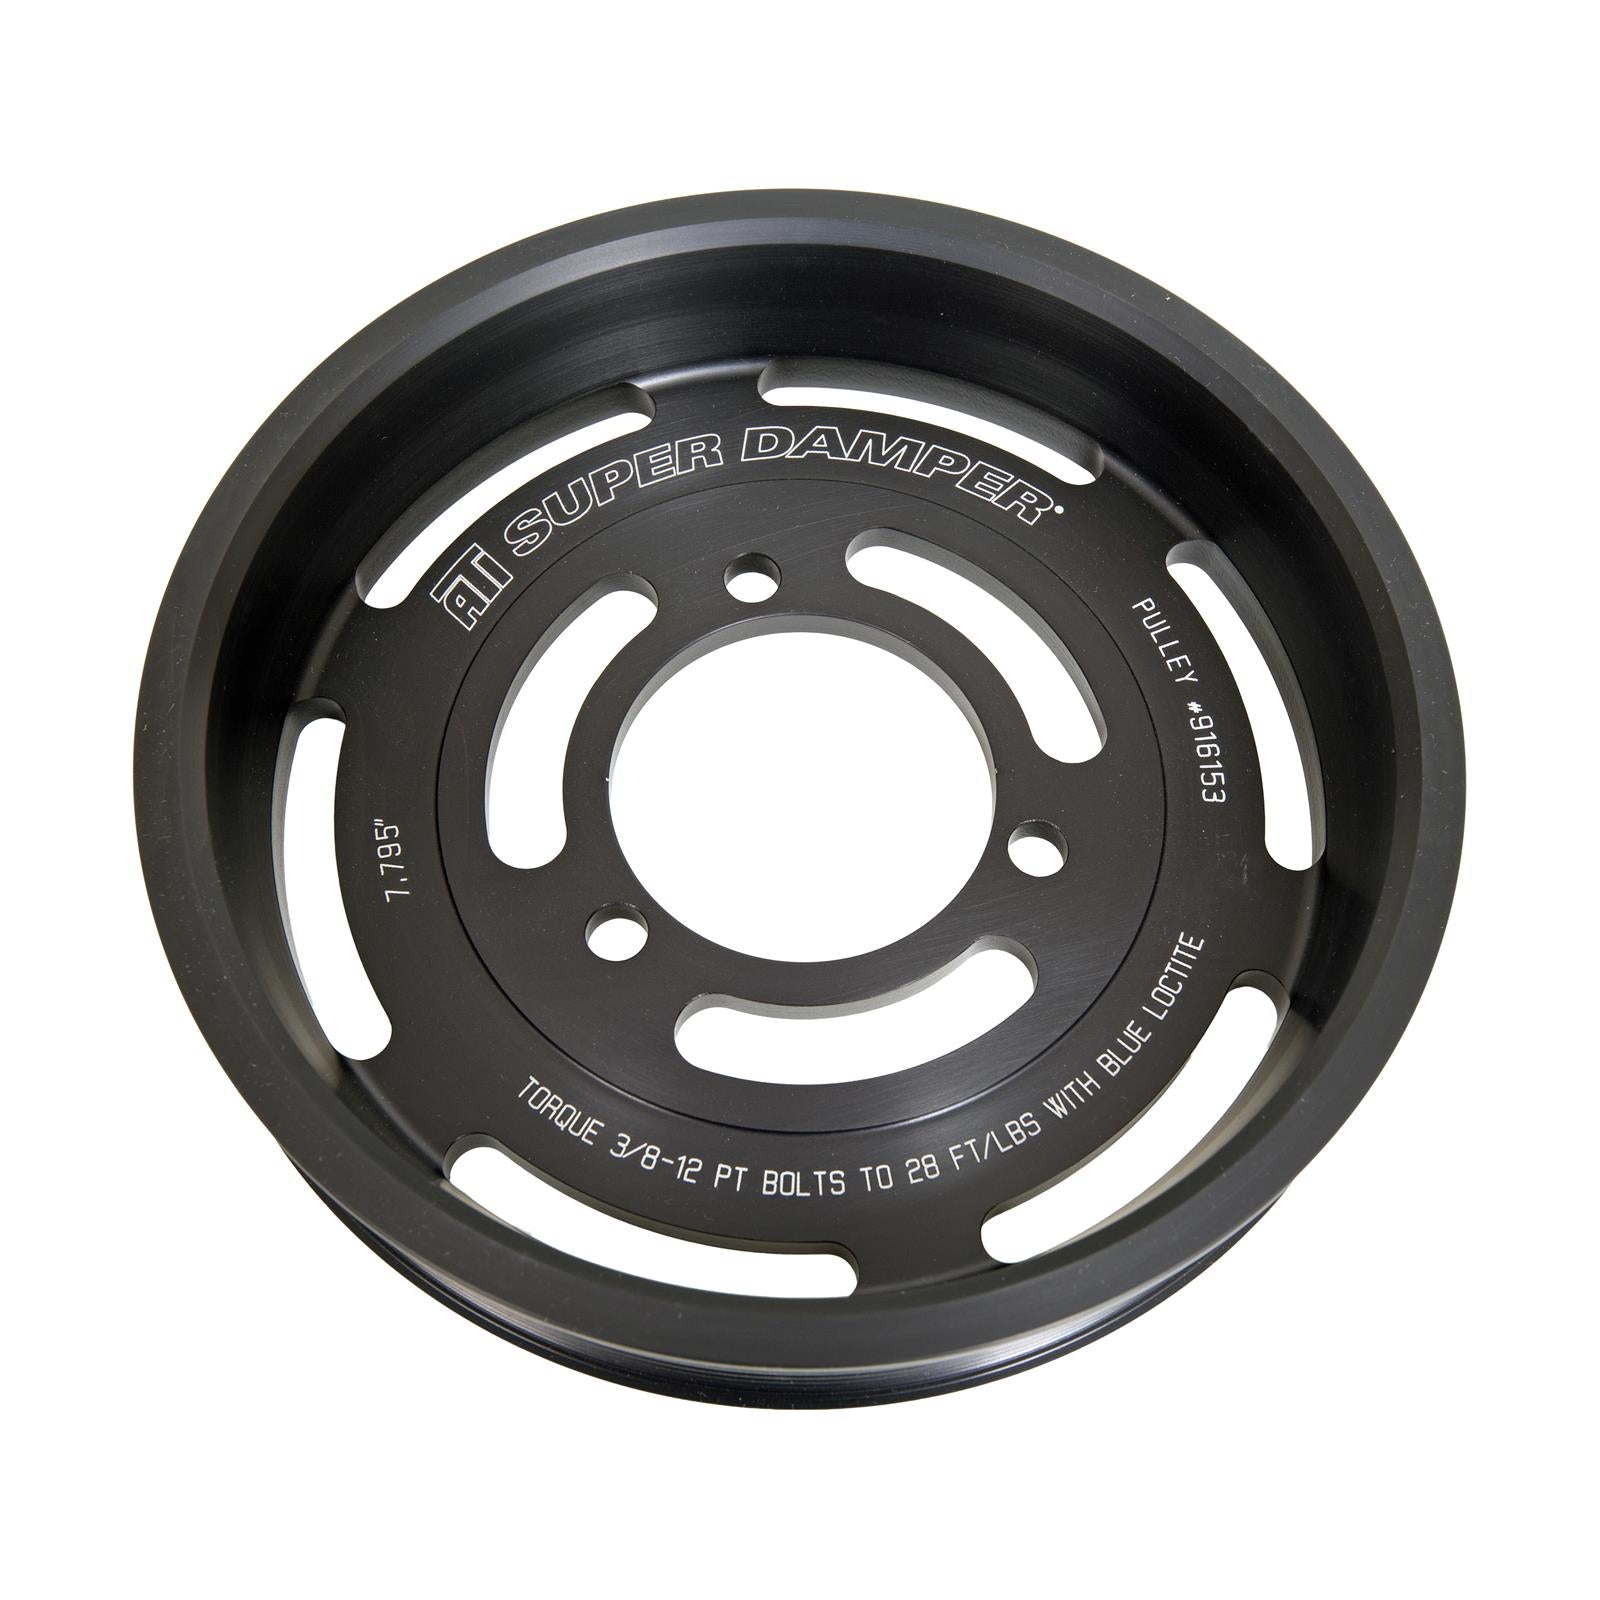 LSA/ZL1 7.990 Dia. (Stock) Pulley